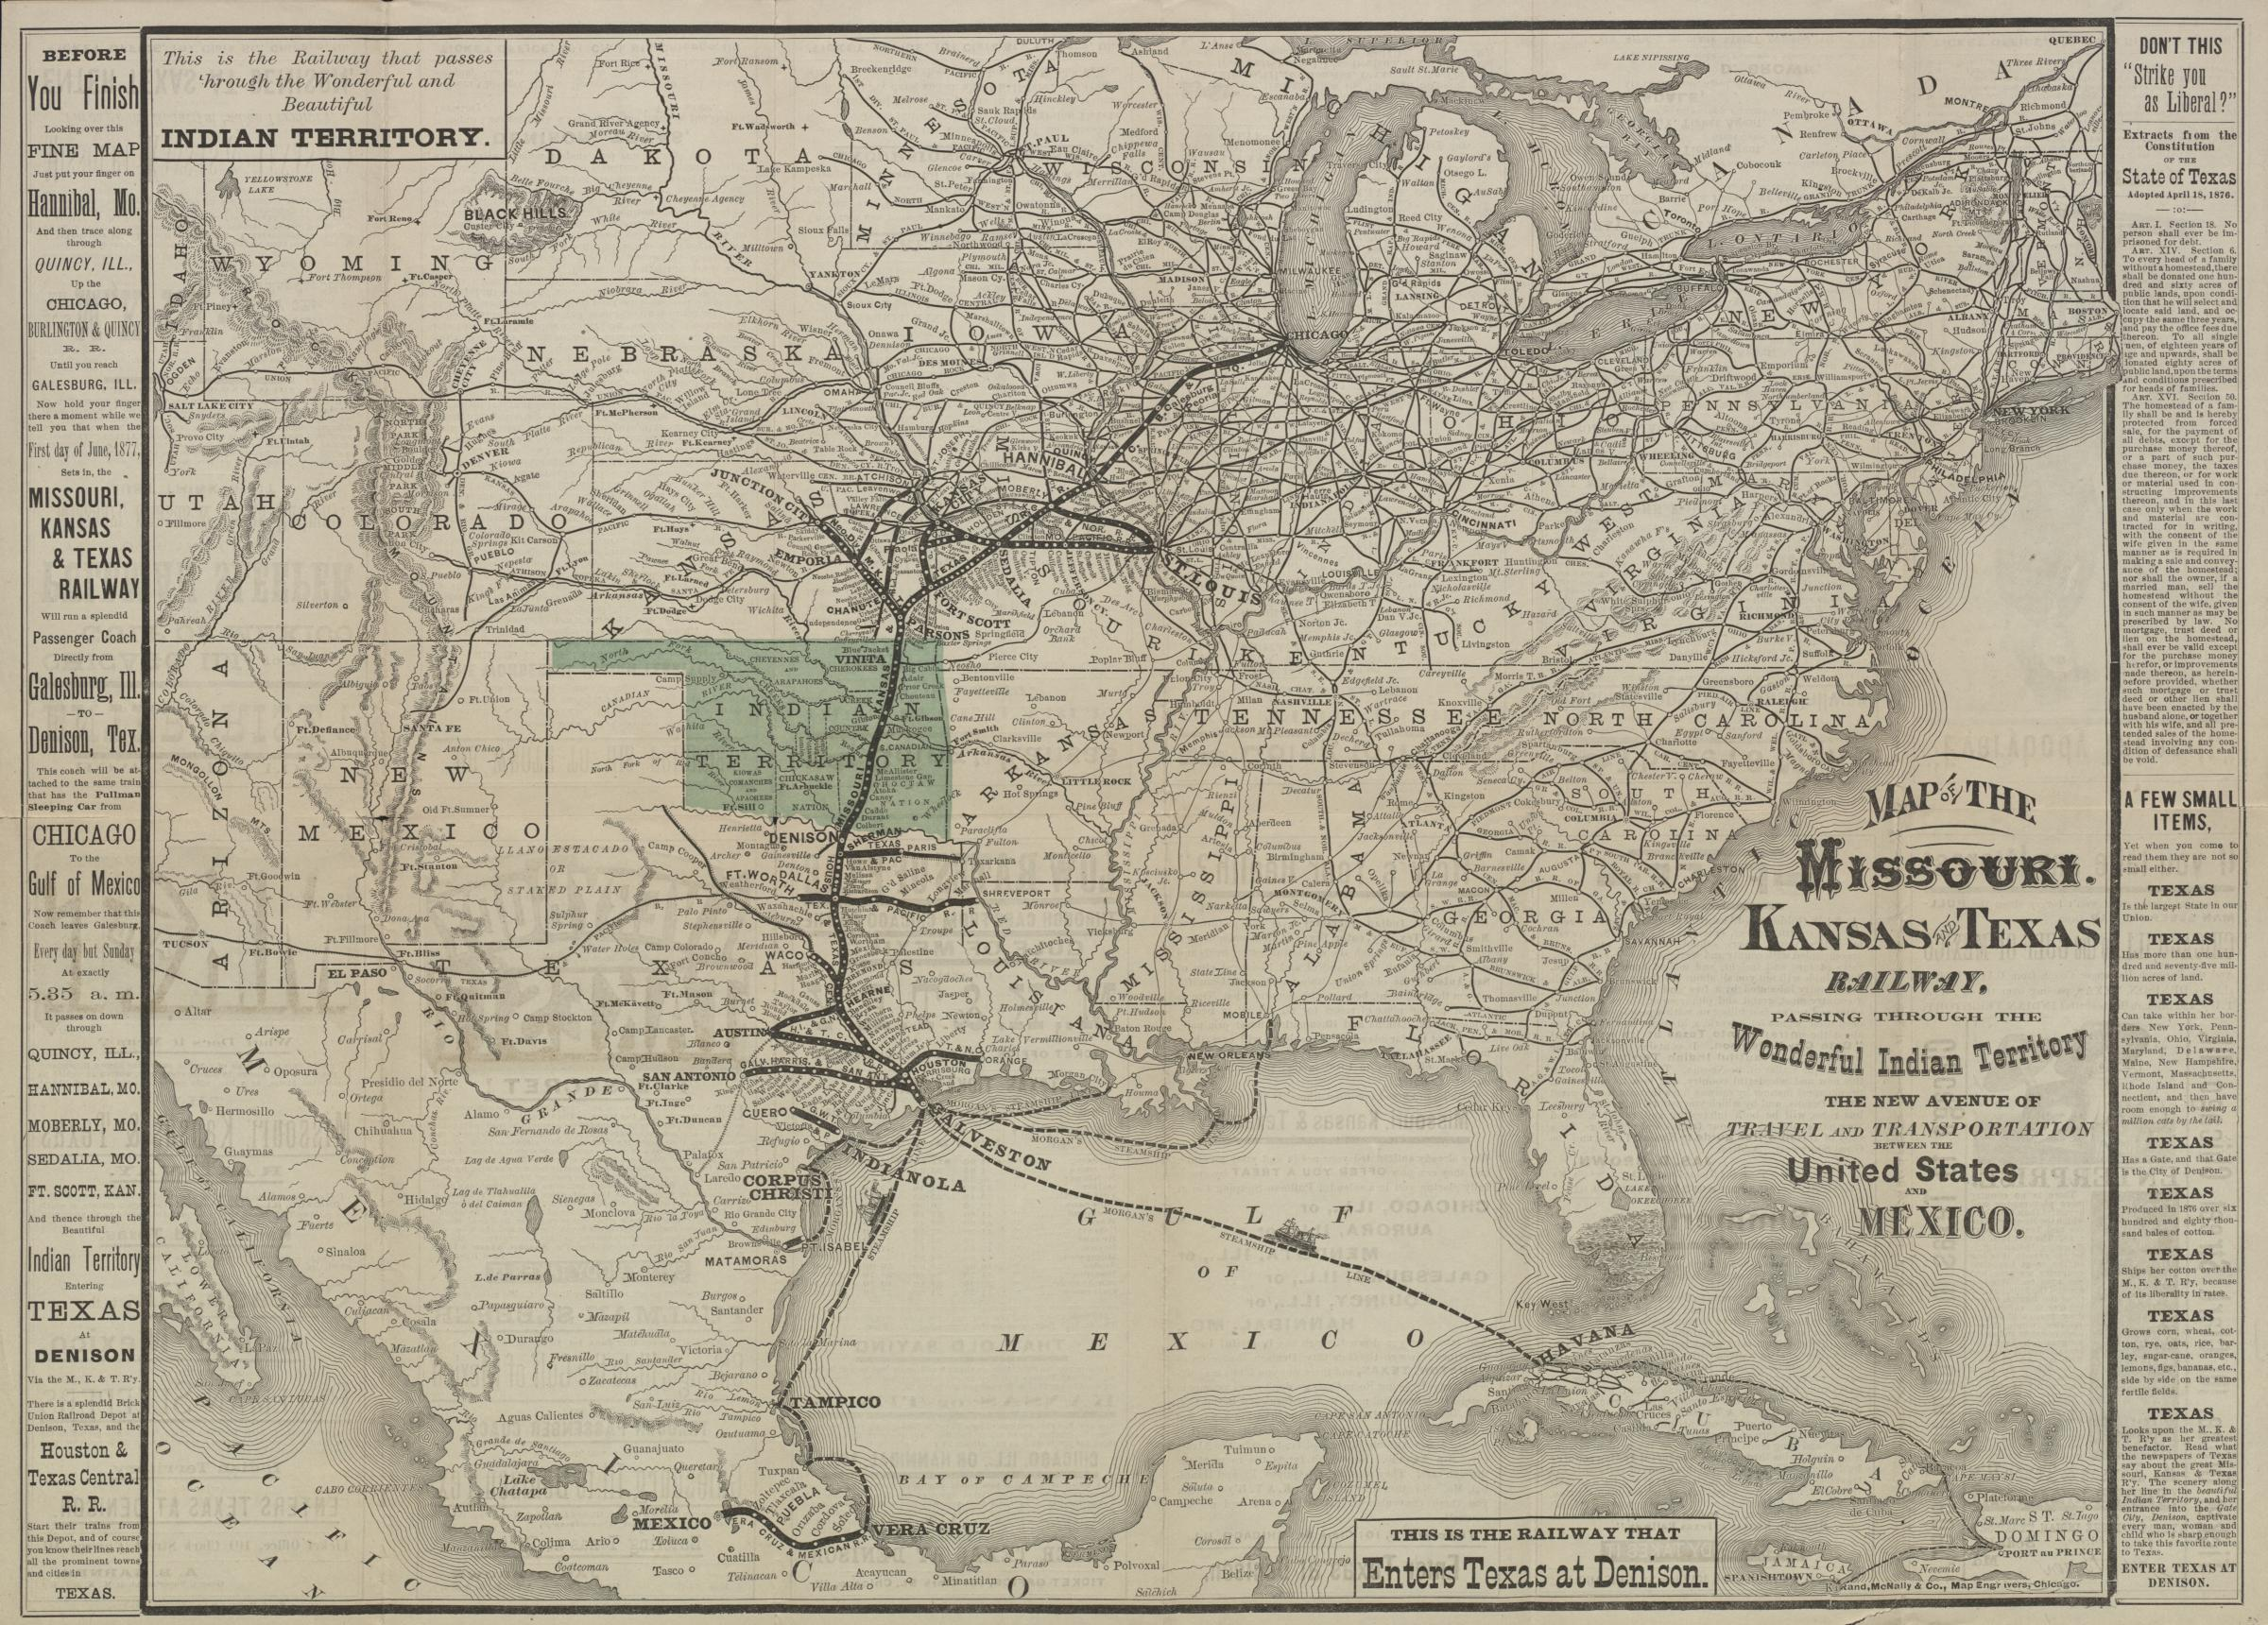 Map of the Missouri-Kansas-Texas (KATY) Railroad System 1877 [2400 Katy Railroad Map on norfolk southern railroad map, union pacific railroad map, rock island railroad map, columbia railroad map, jacksonville railroad map, raleigh railroad map, el paso county railroad map, katy trail, lynchburg railroad map, knoxville railroad map, u.s. railroad map, mkt railroad map, western pacific railroad map, north missouri railroad map, katy flyer passenger train, wabash railroad map, beaumont railroad map, santa fe railroad map, missouri pacific railroad map, new york erie railroad map,